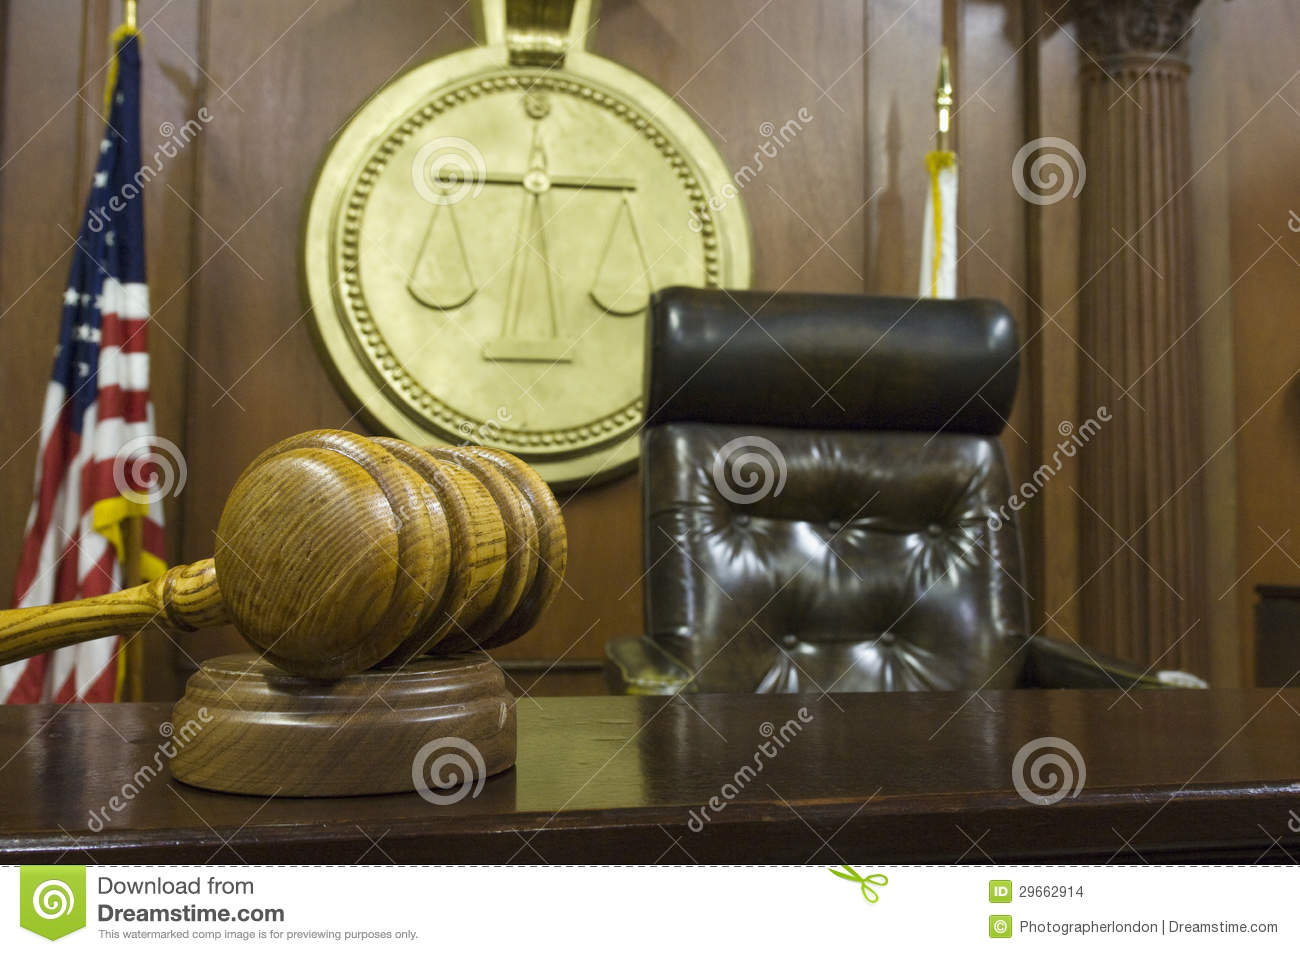 ... of gavel and wooden block on table with judge's chair in courtroom